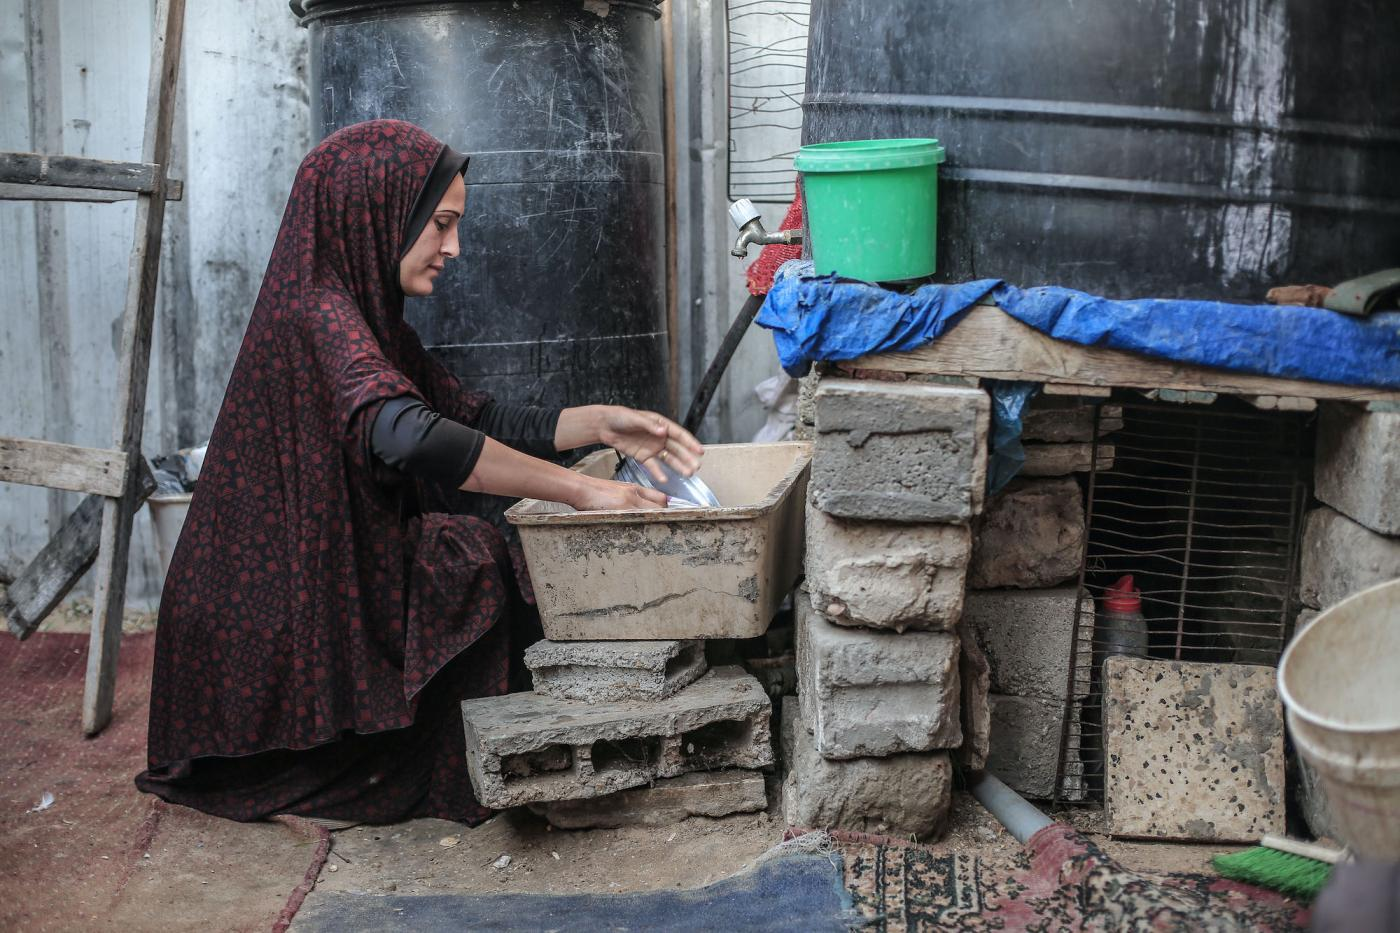 Aisha Abu Nemer says her family struggles to access clean water (Sanad Latefa/MEE)